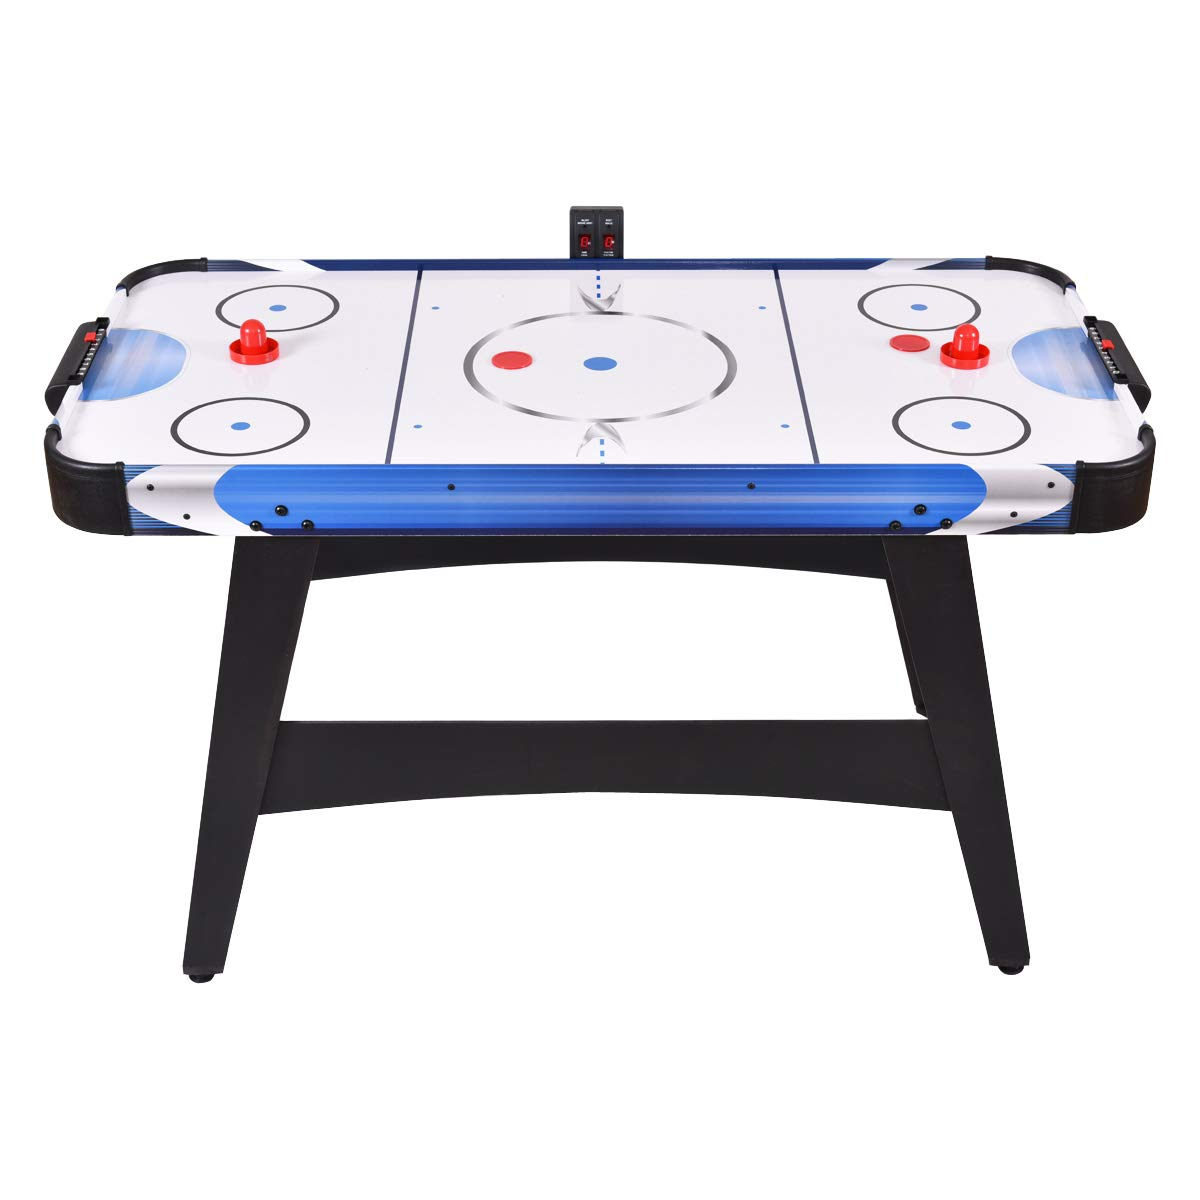 GYMAX 54'' Air Hockey Table, Electric Air Powered Hockey with 2 Pucks 2 Pushers Electronic Scorer,for Kids and Adults by GYMAX